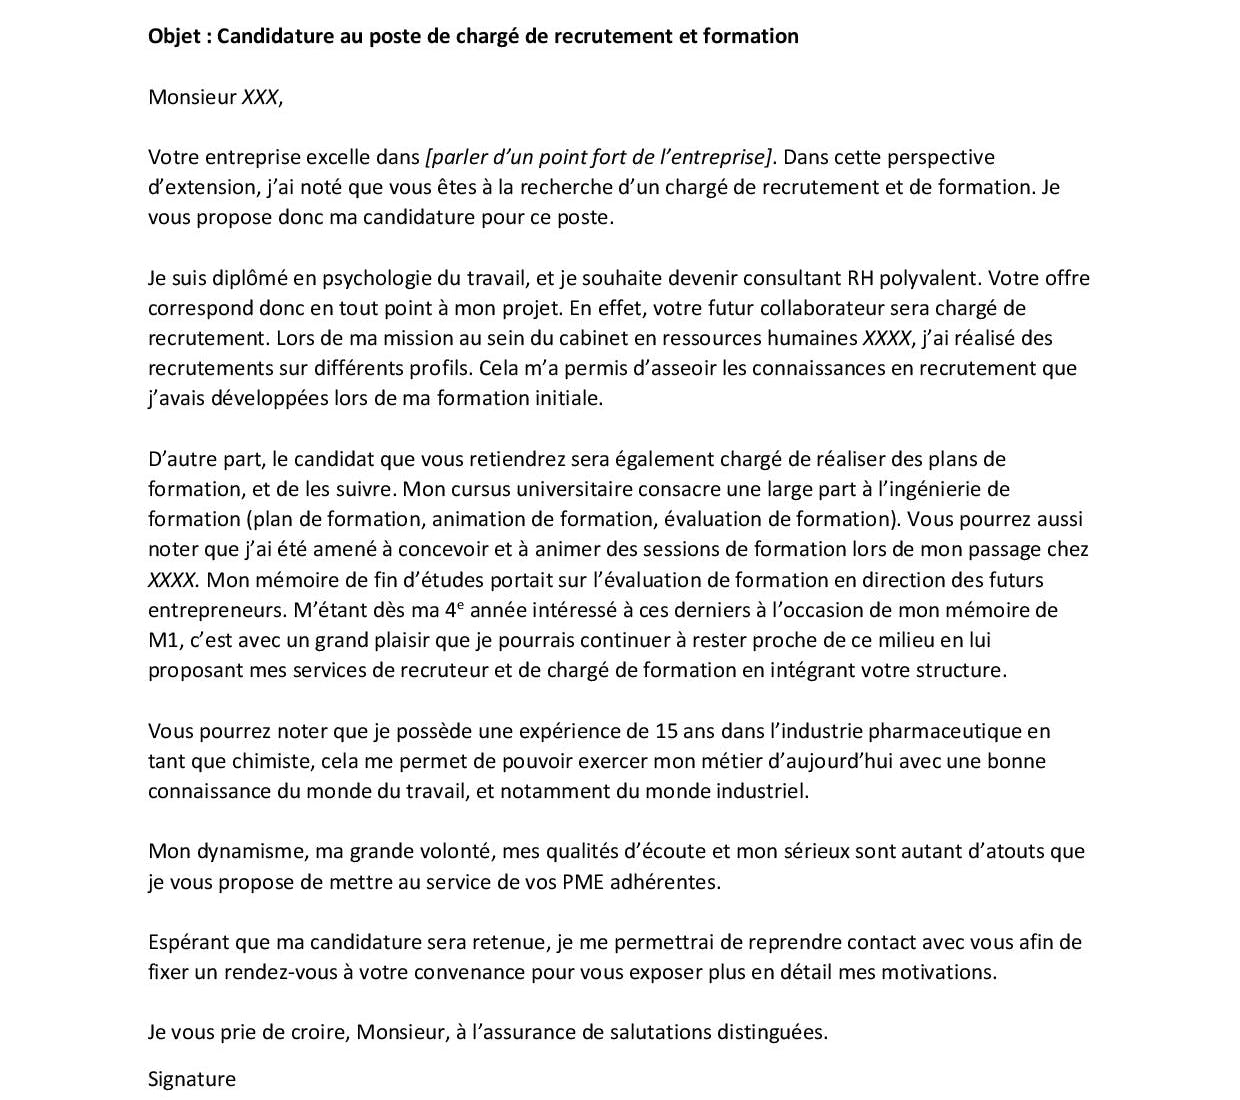 Exemple Lettre De Motivation Fongecif Reconversion: Lettre De Motivation Reconversion Professionnelle : 2 Bons